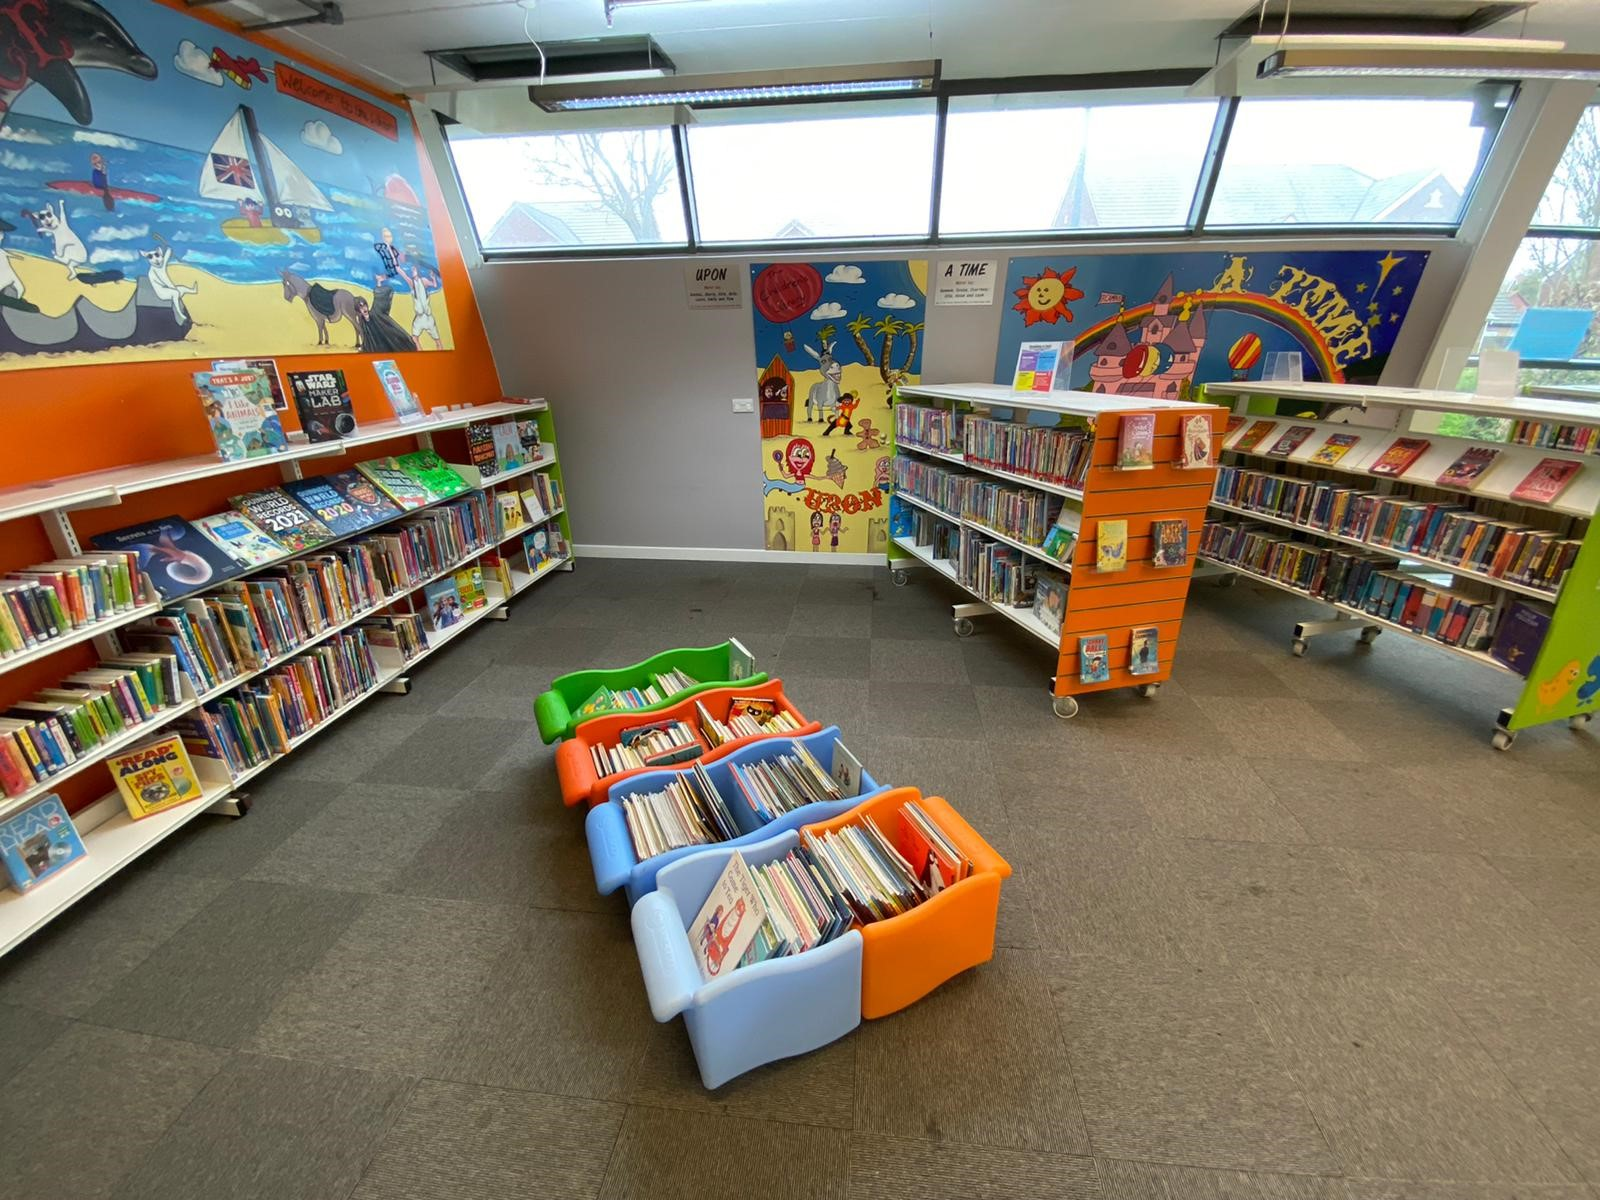 A side view of the children's area at a library, with orange and green shelves and book bins